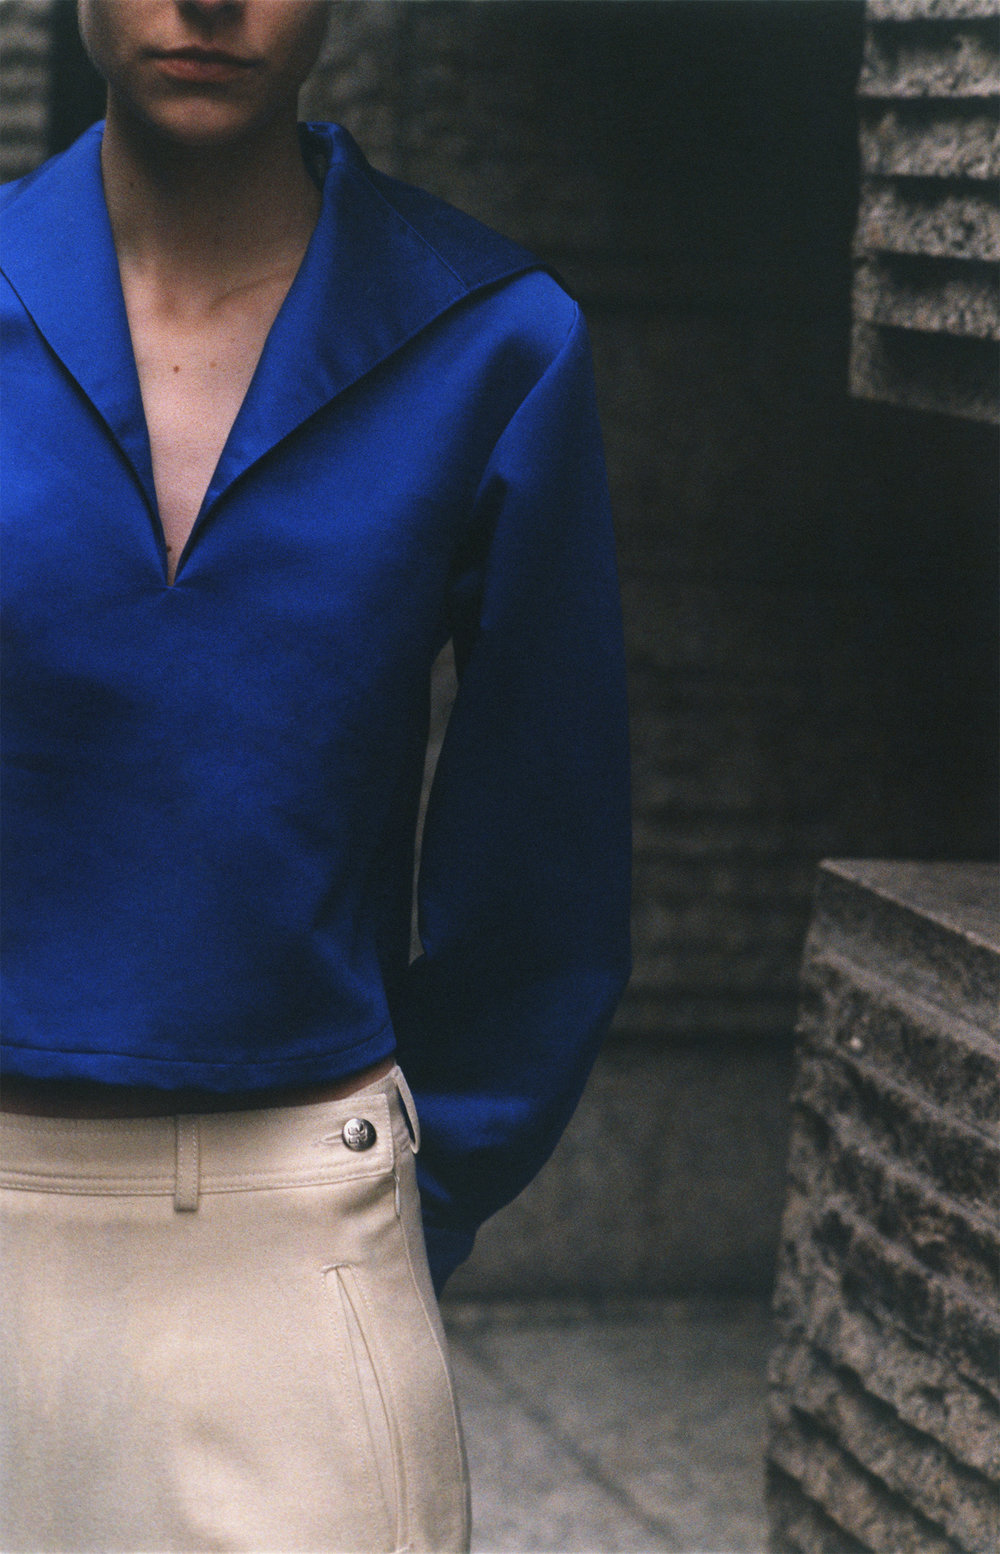 Removable collar sailor jacket SADIE WILLIAMS, trousers COURREGES.